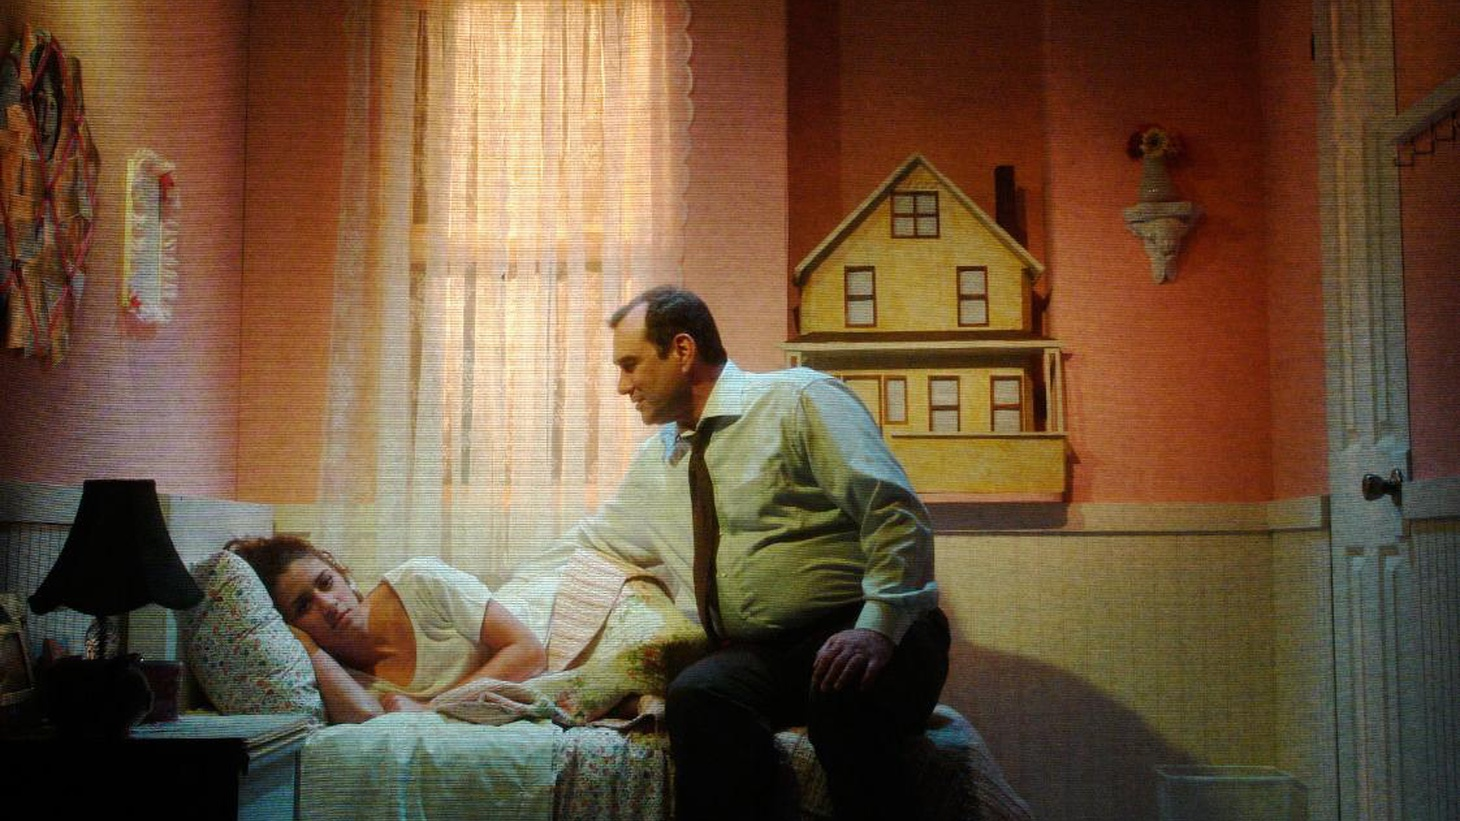 One of the best Off-Broadway plays of last year — one that hasn't made it to Los Angeles yet — was titled Becky Shaw. Written by veteran Law & Order writer Gina Gionfriddo, Becky Shaw was shortlisted for the Pulitzer Prize for Drama and it offered a wonderful, dark look at modern love and relationships.